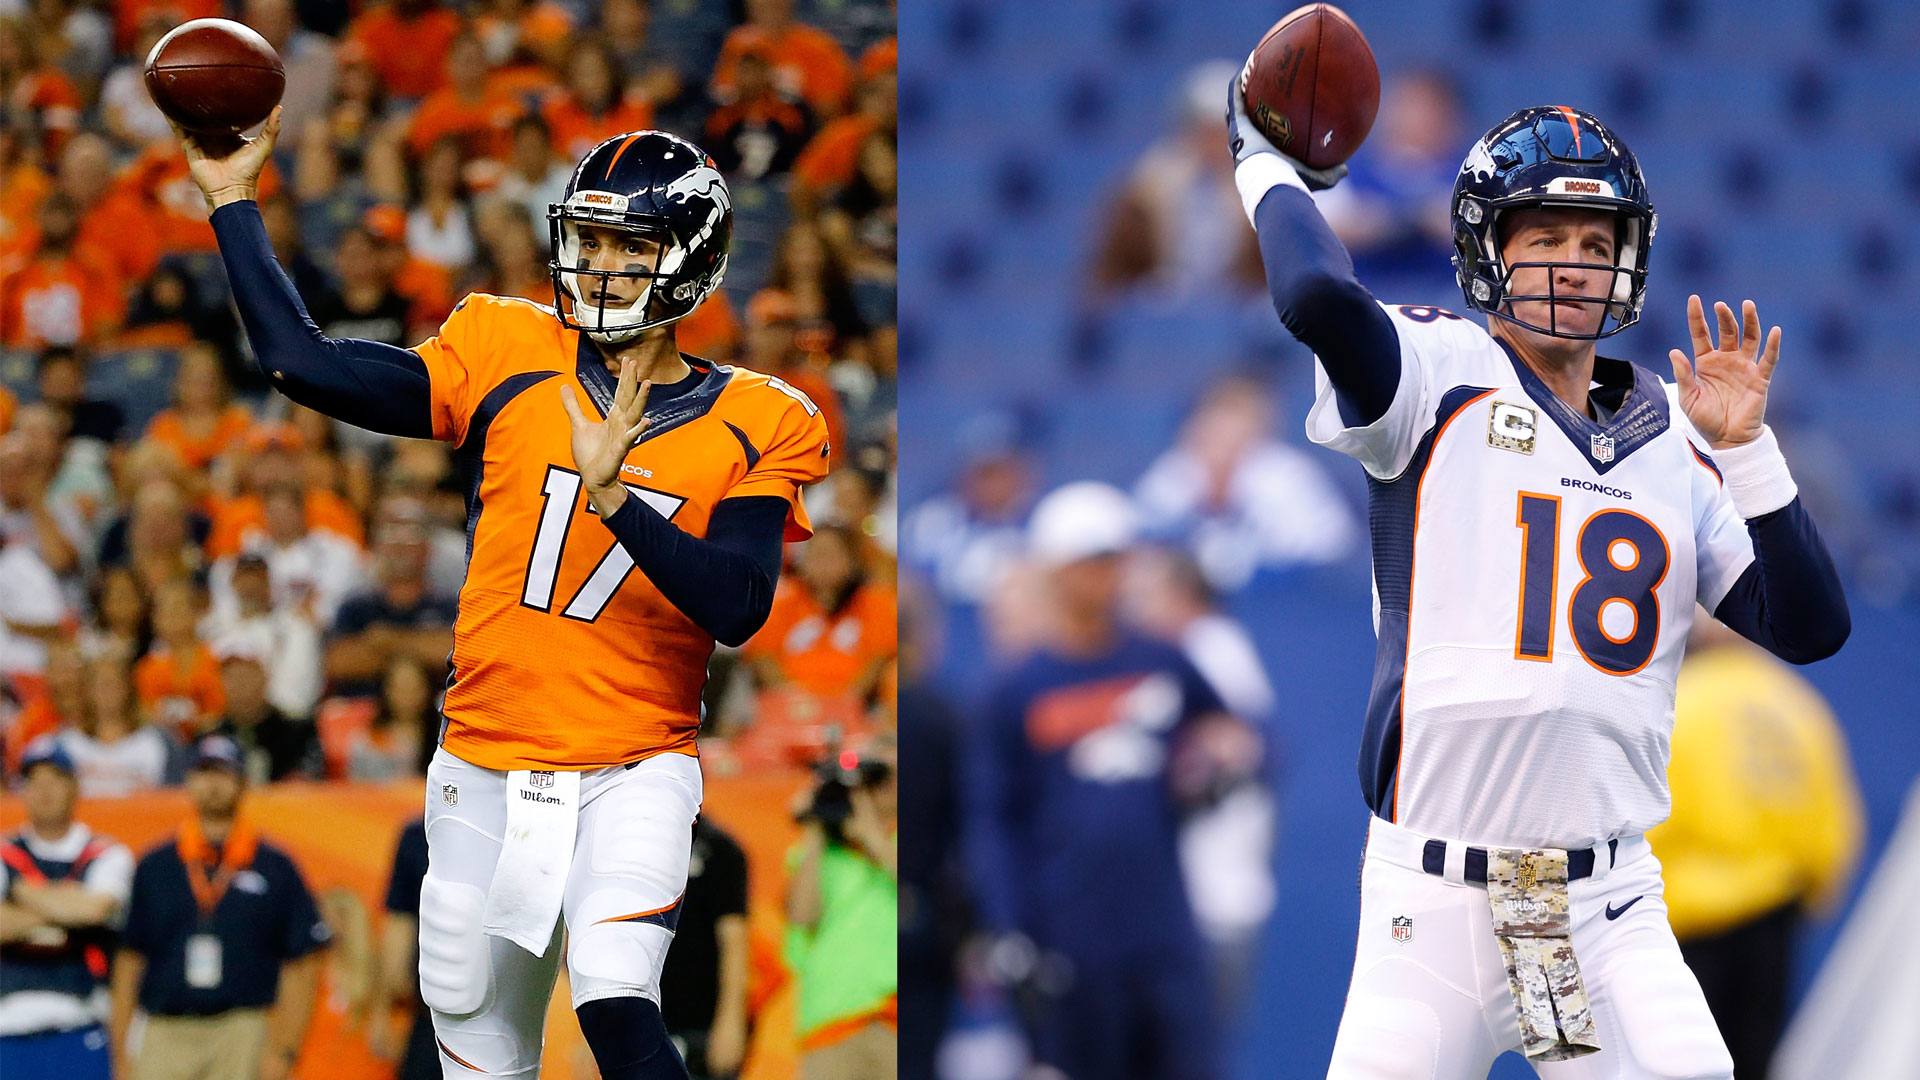 Does John Elway want Peyton Manning back?